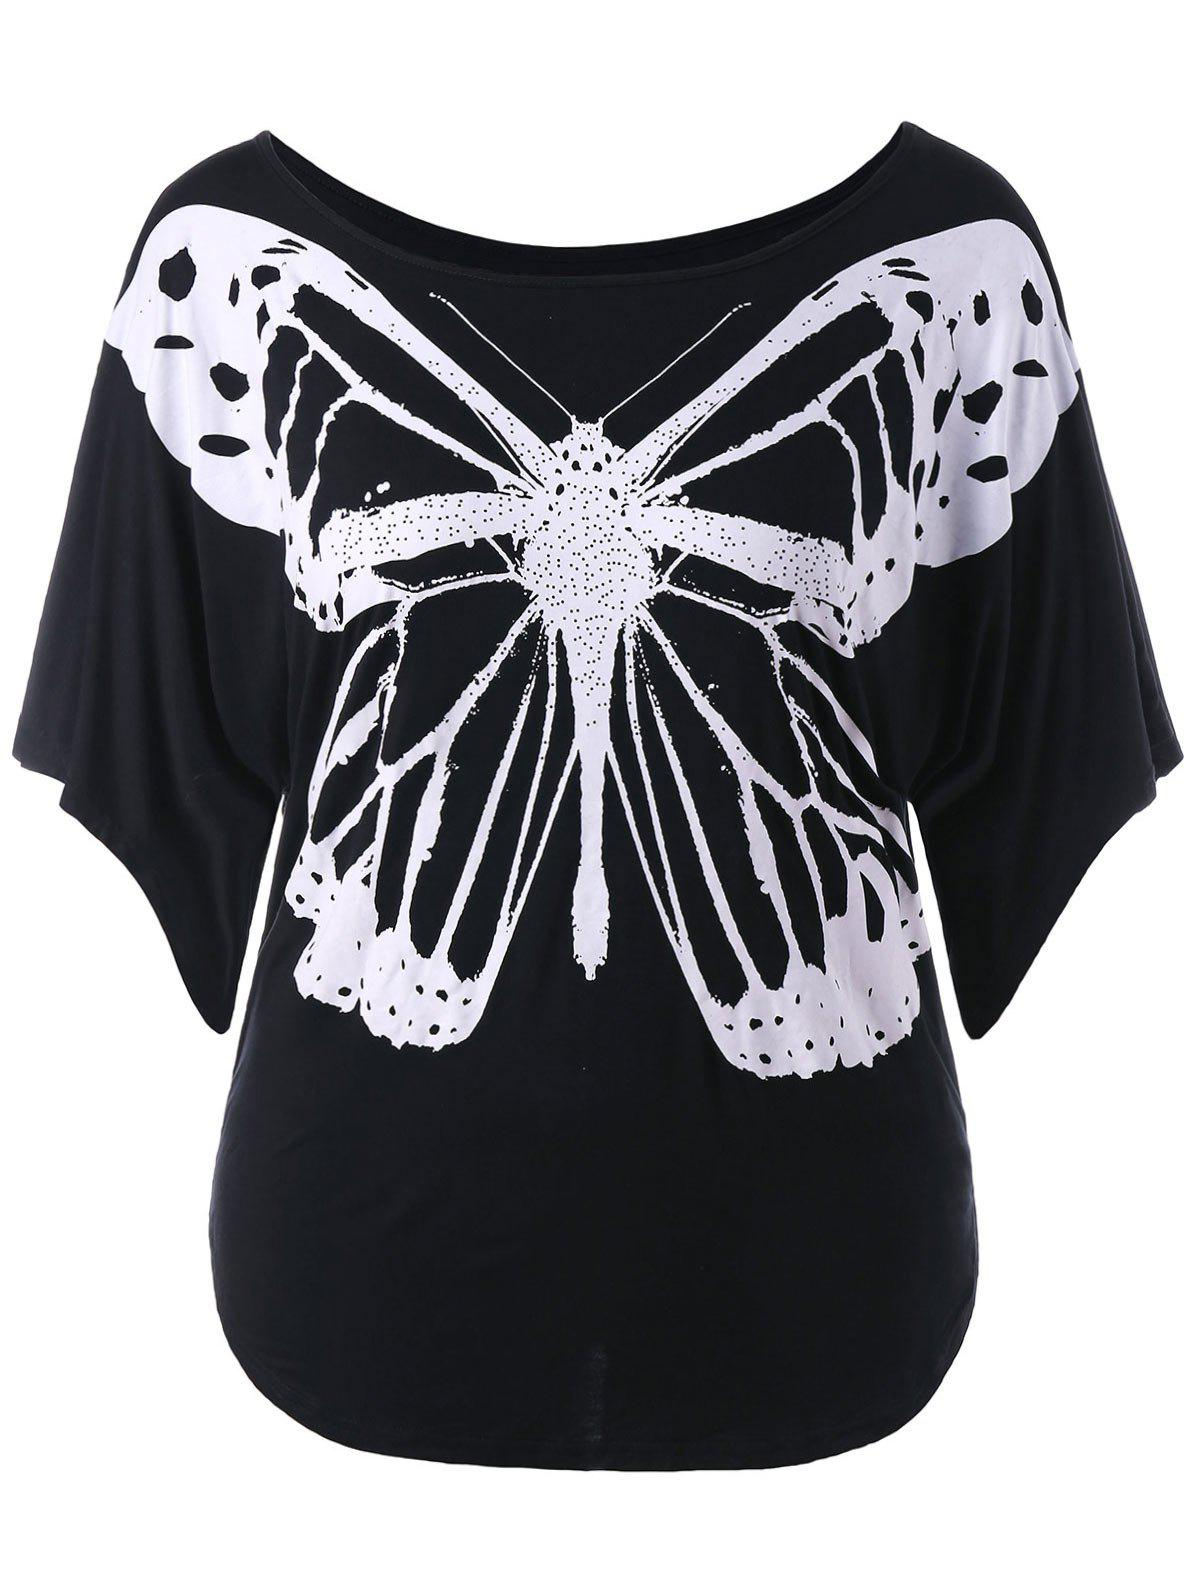 Butterfly Print Plus Size T-shirt - BLACK 3X